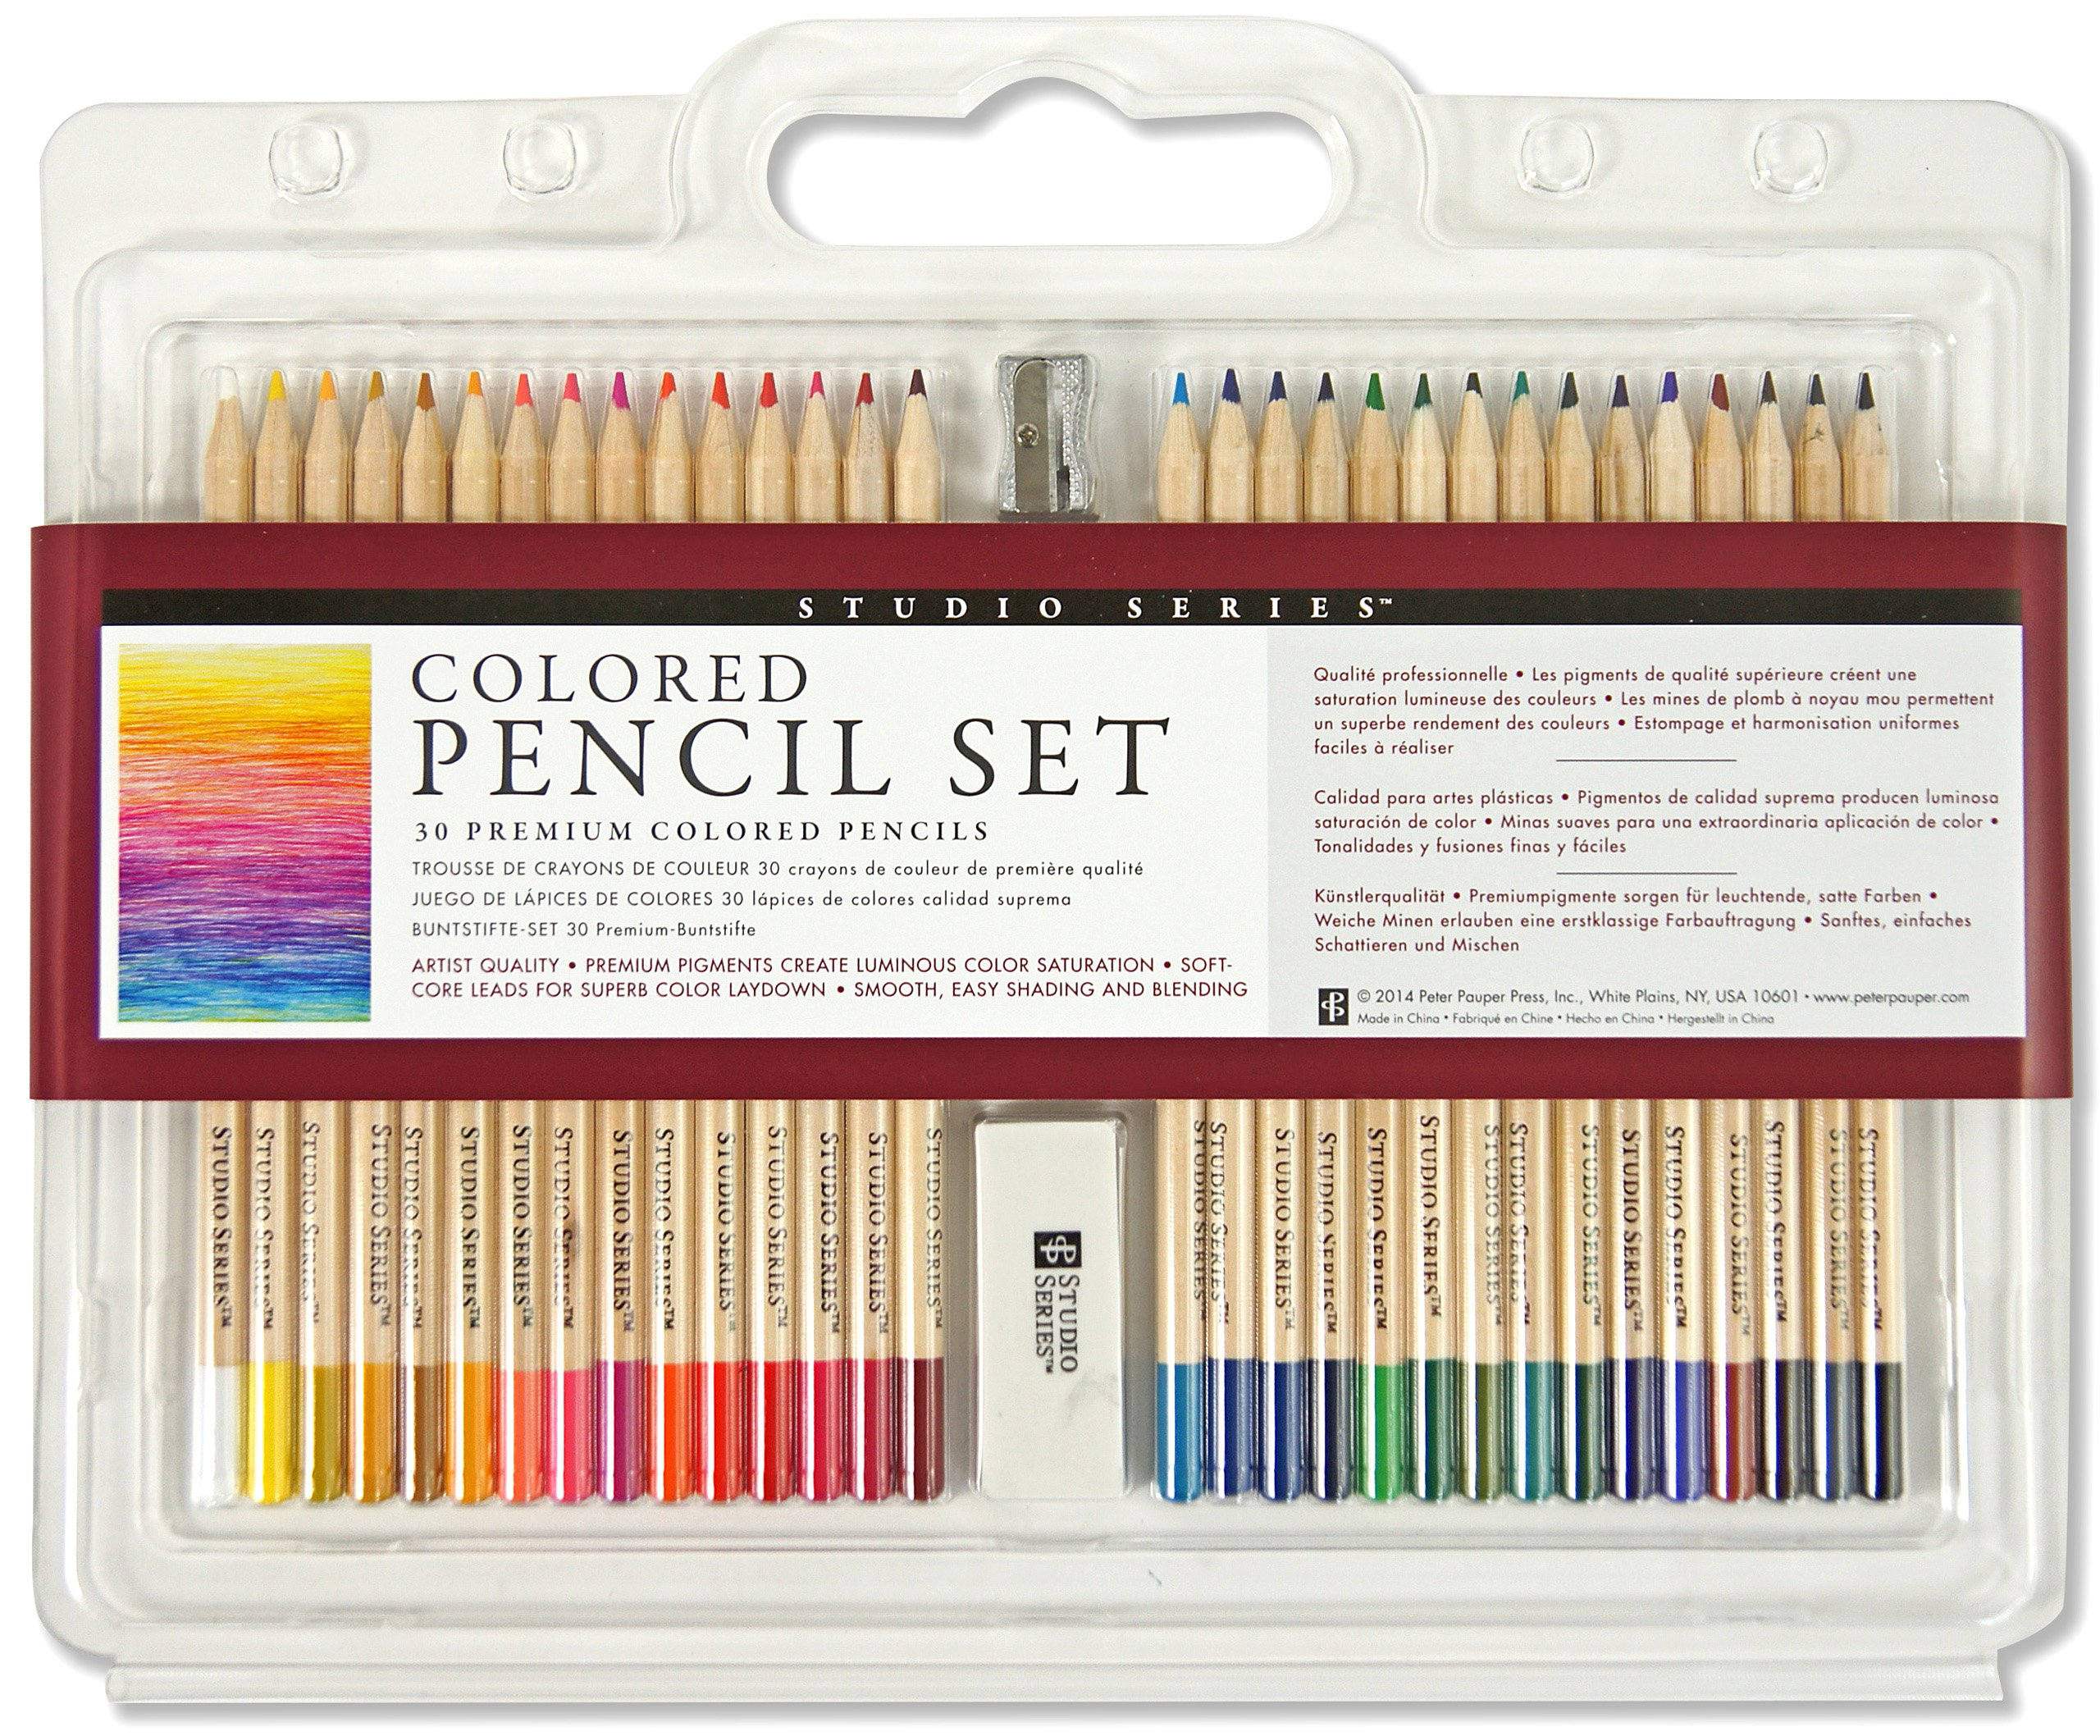 Studio Colored Pencil Set Multilingual product image